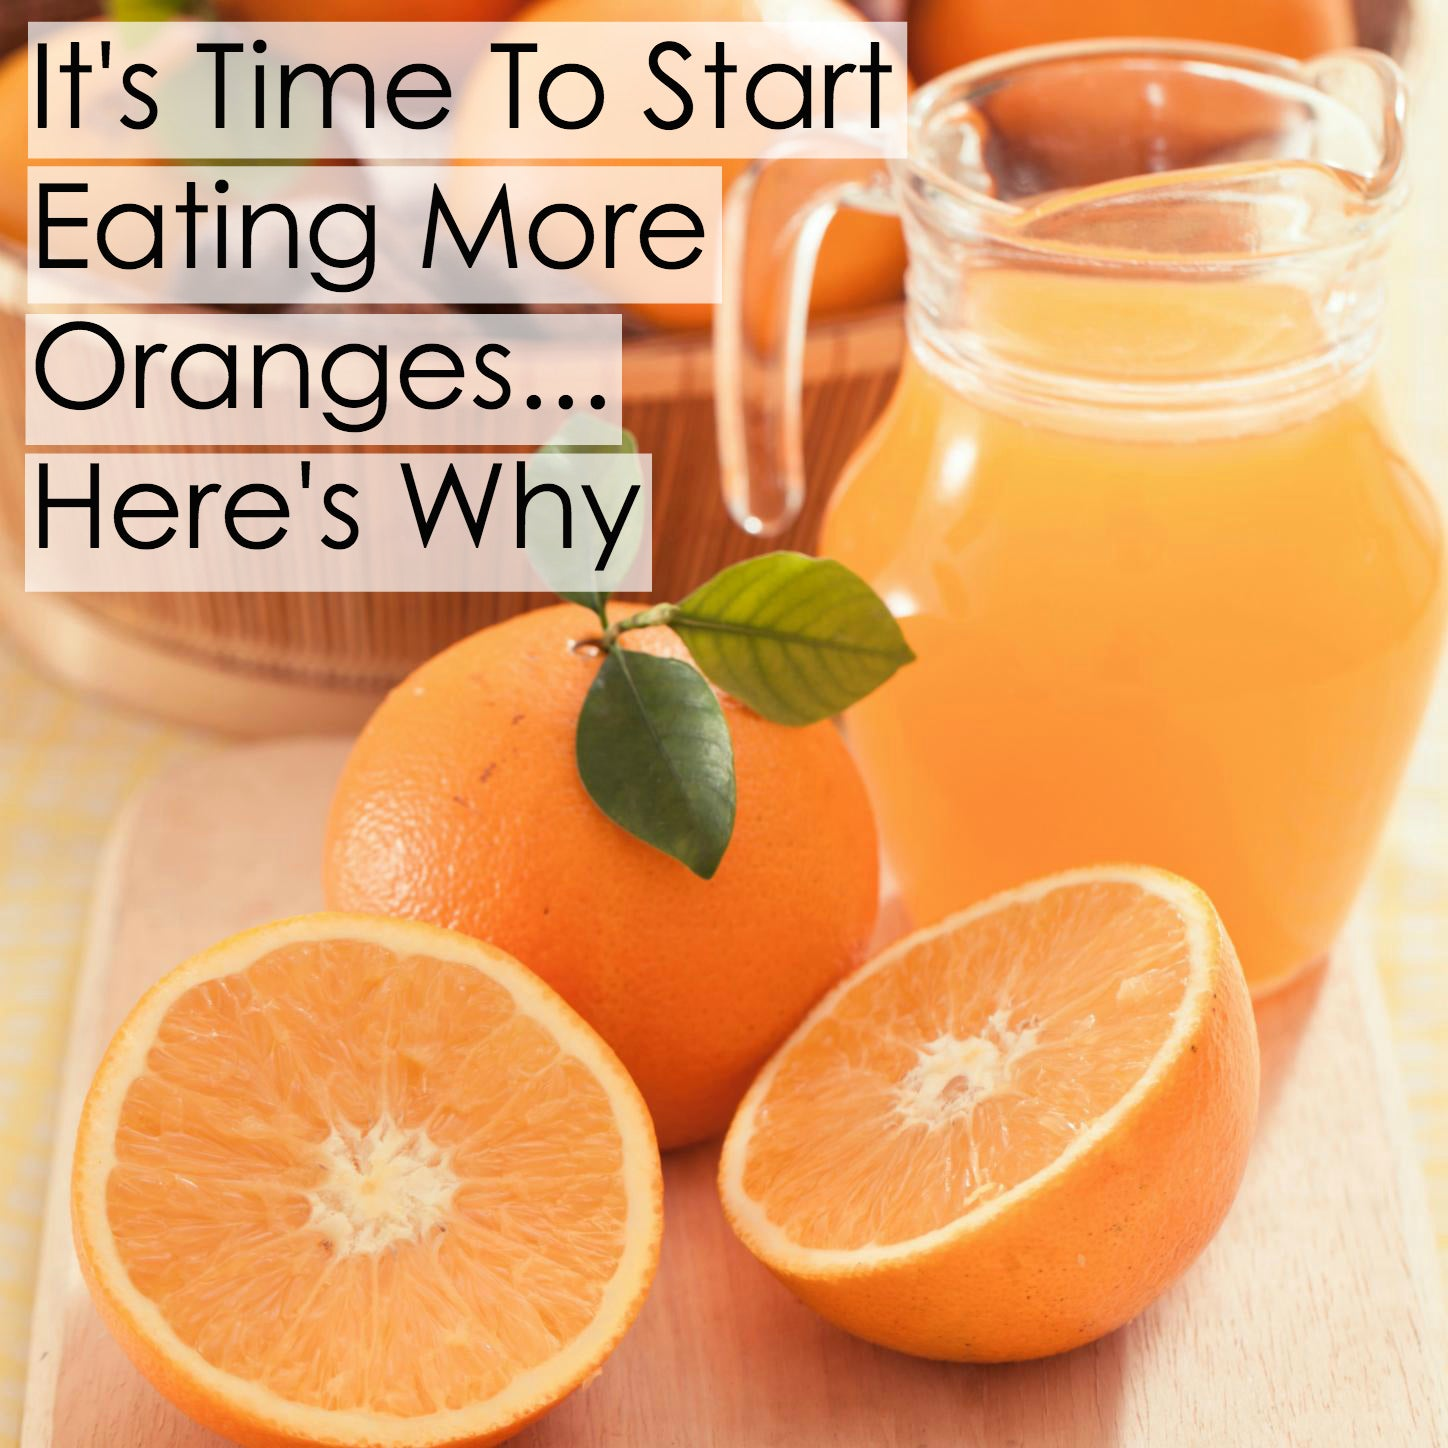 It's Time to Start Eating Oranges... Here is the Why and How.